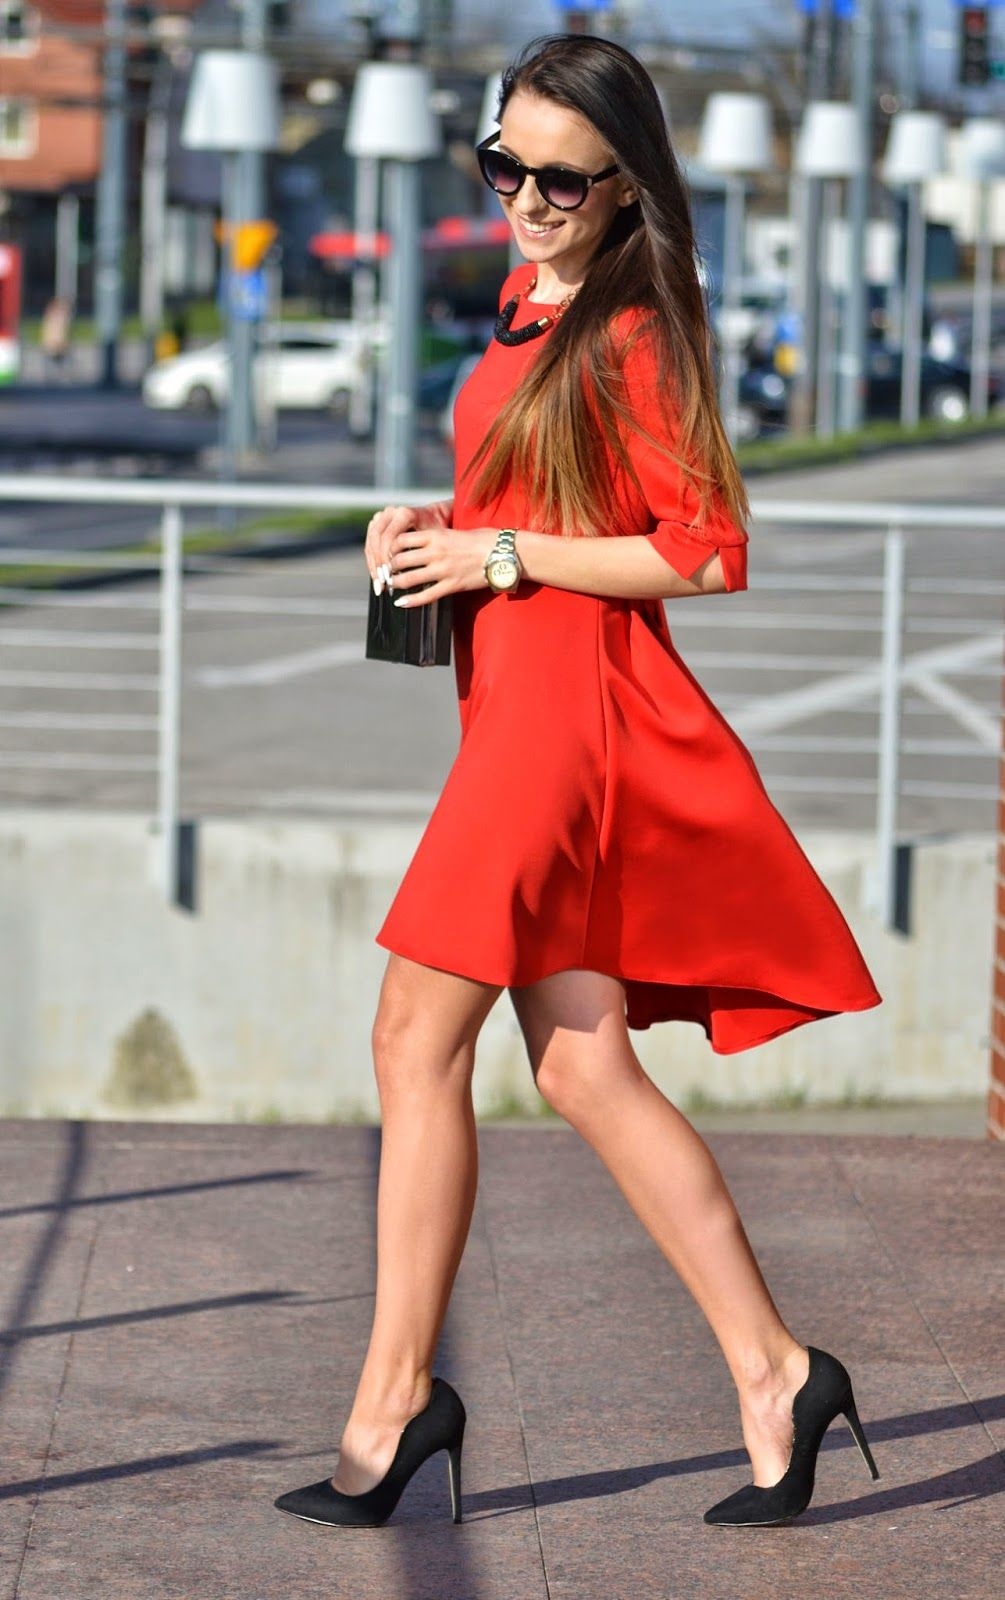 Simple sexy perfection ~ red dress, high heels and great legs ...